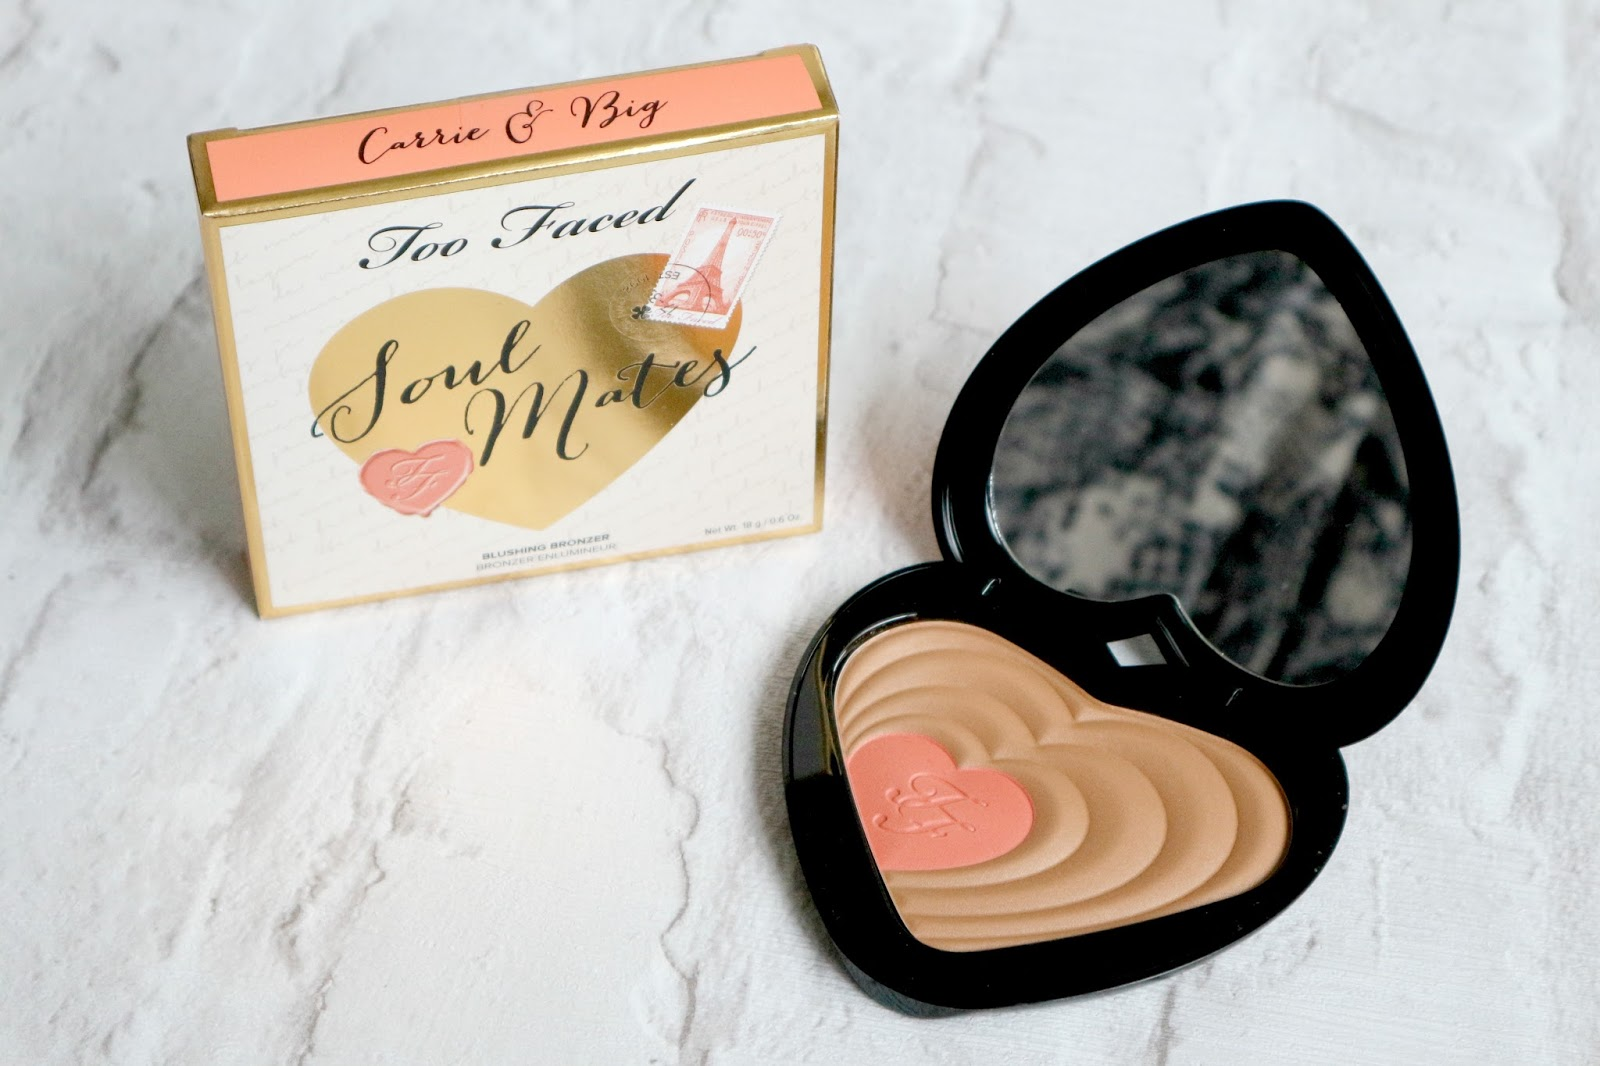 Too Faced Soul Mates Bronzer Carrie and Big